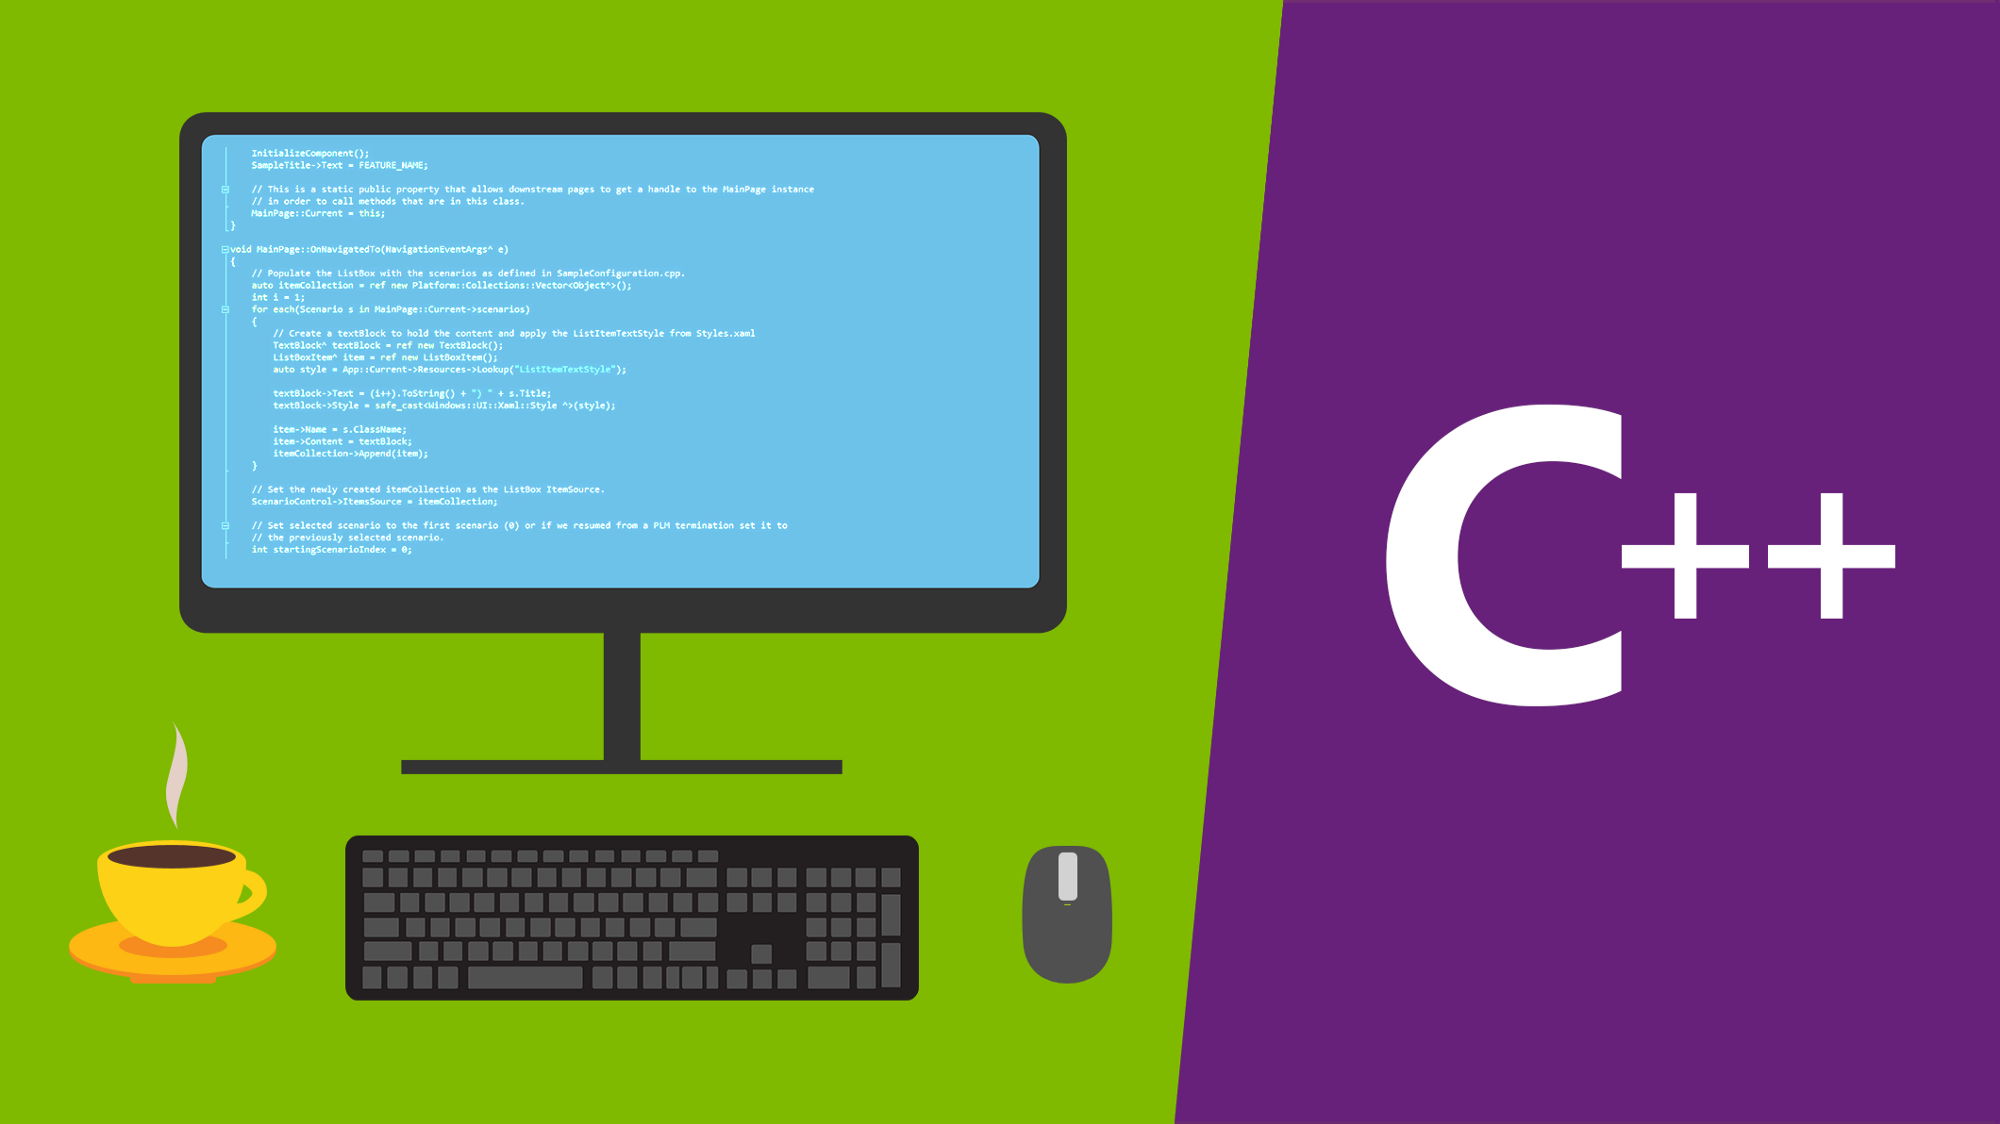 c++ web calls from console application